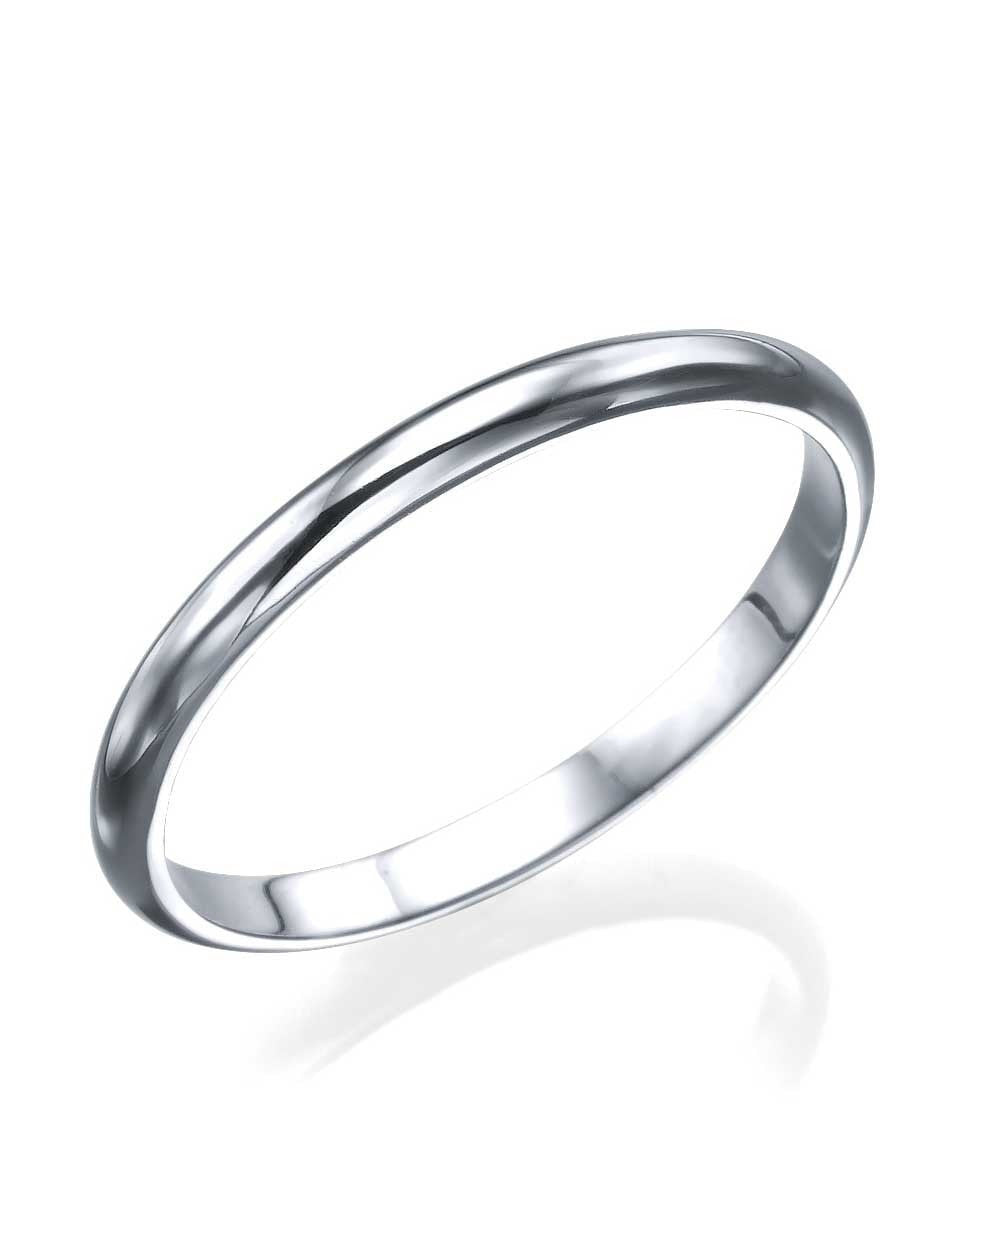 leonard crossover rings from dews bridal uk wedding platinum image band